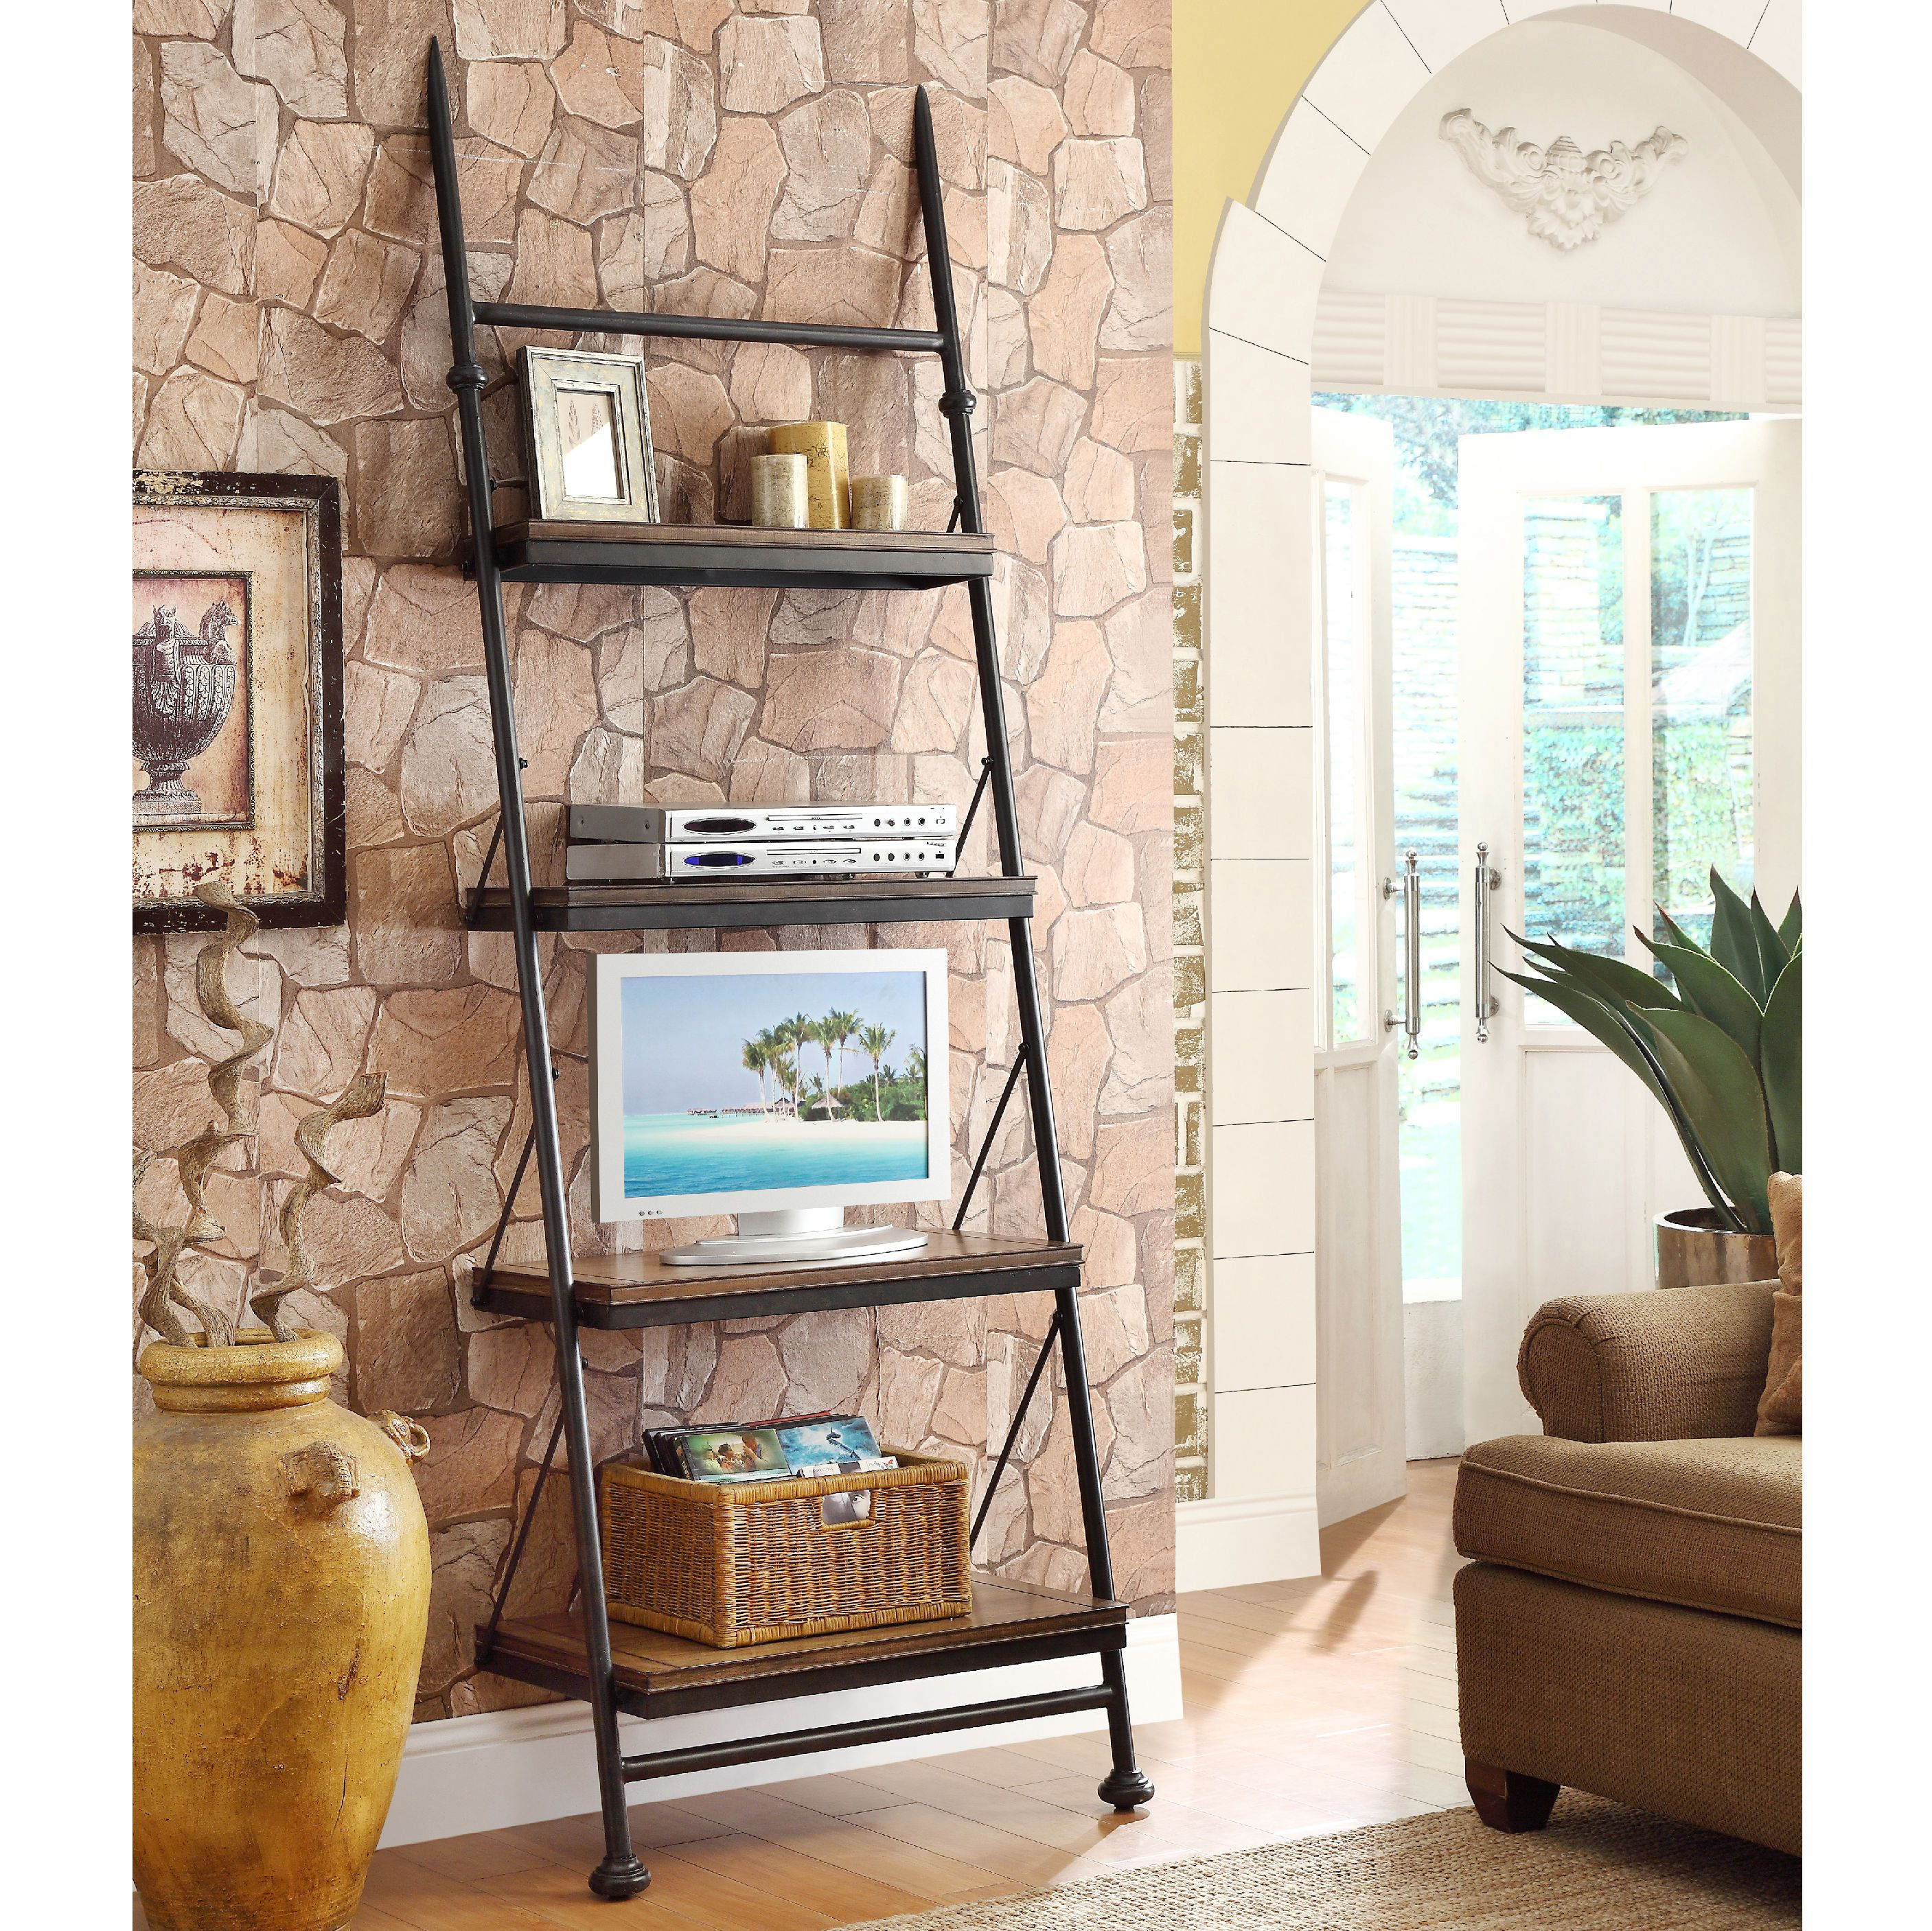 altra viendoraglass com black metal dwelling set of leaning bookshelf ikea ladder white bookcase desk and